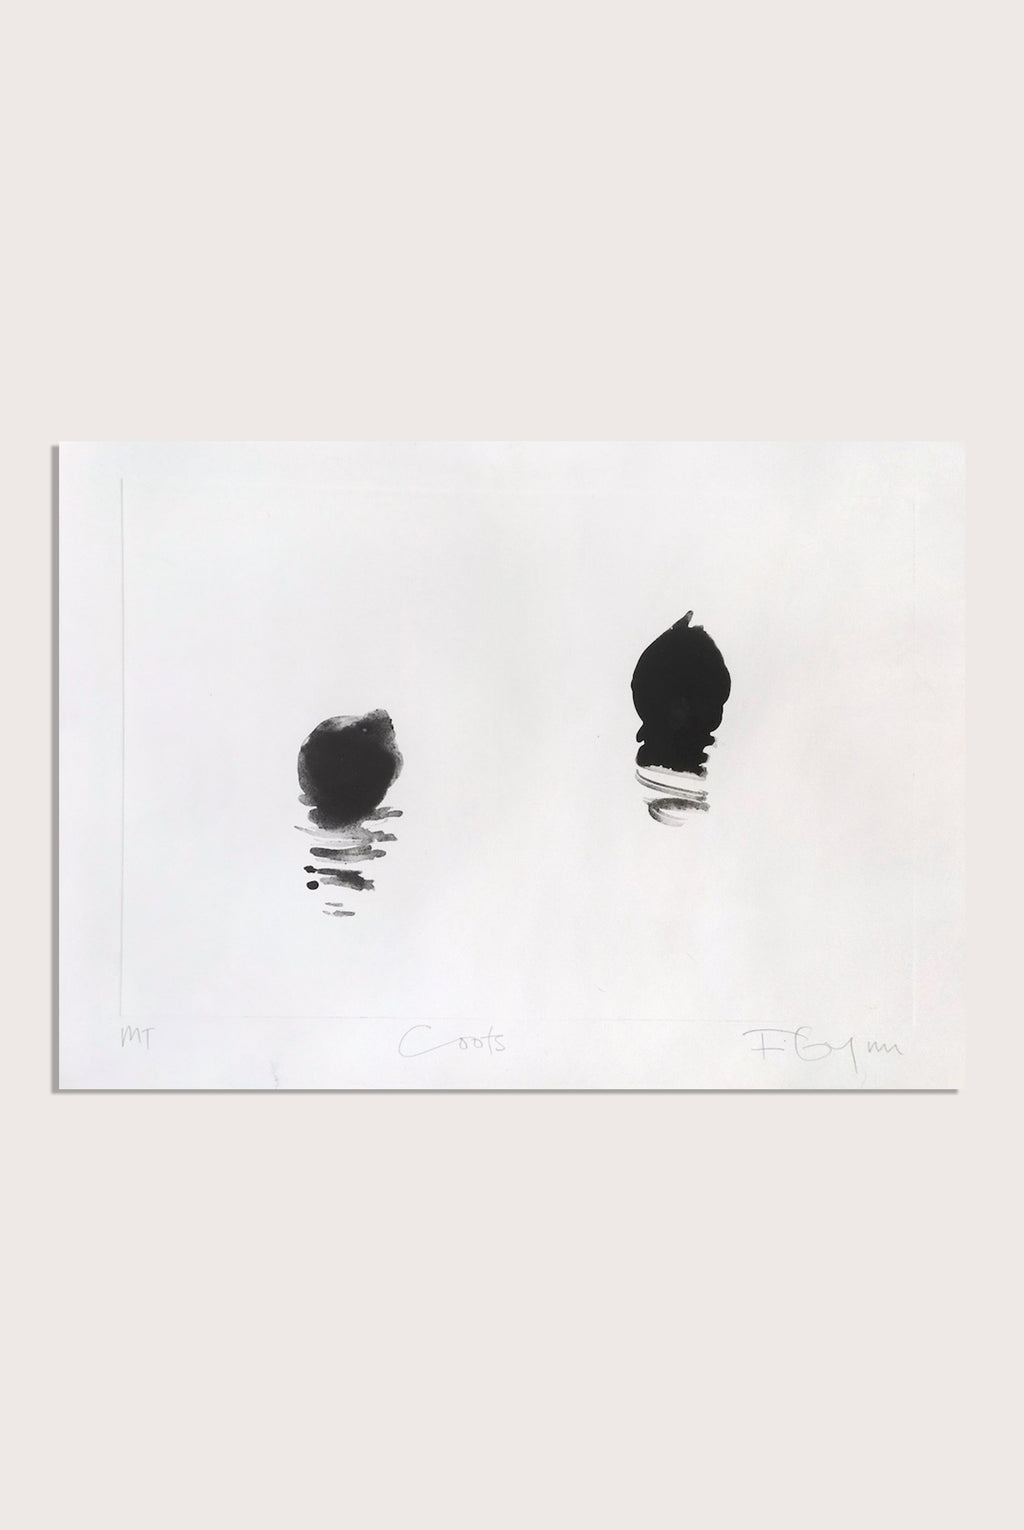 'Coots', a minimal monotype by contemporary, woman artist Frances Gynn